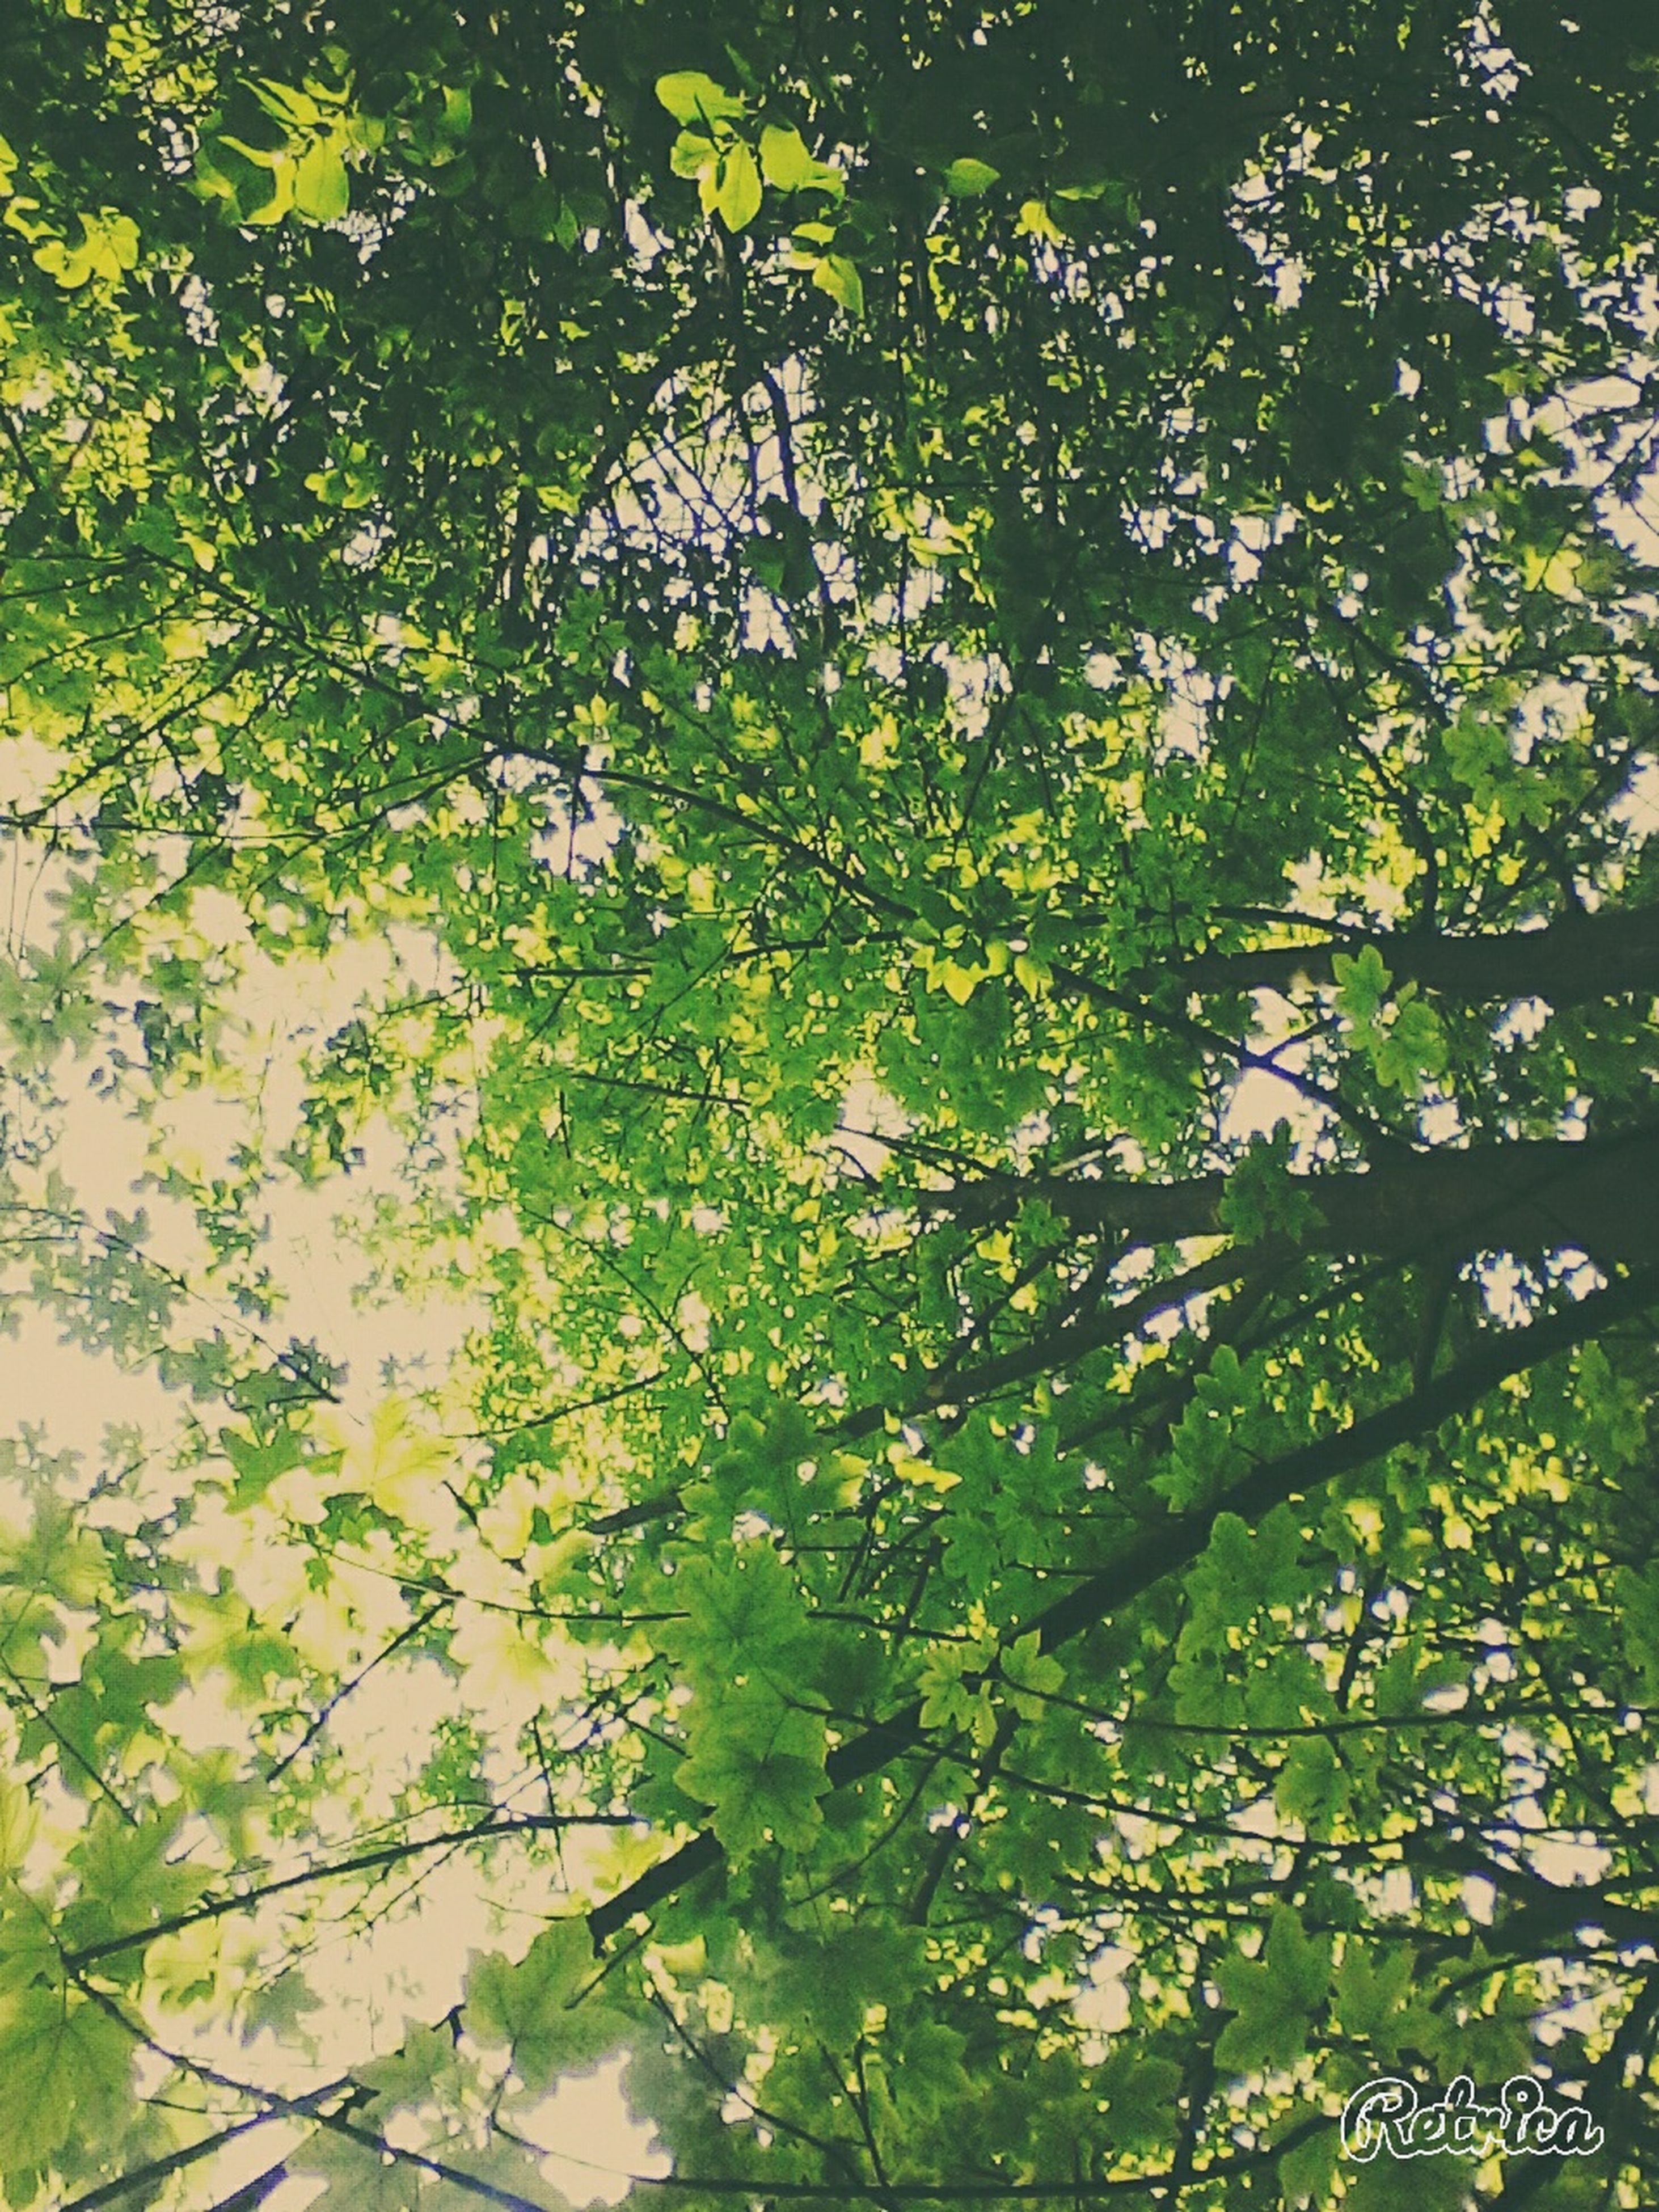 growth, tree, branch, leaf, nature, green color, beauty in nature, low angle view, plant, tranquility, day, outdoors, full frame, no people, backgrounds, freshness, growing, lush foliage, green, sunlight